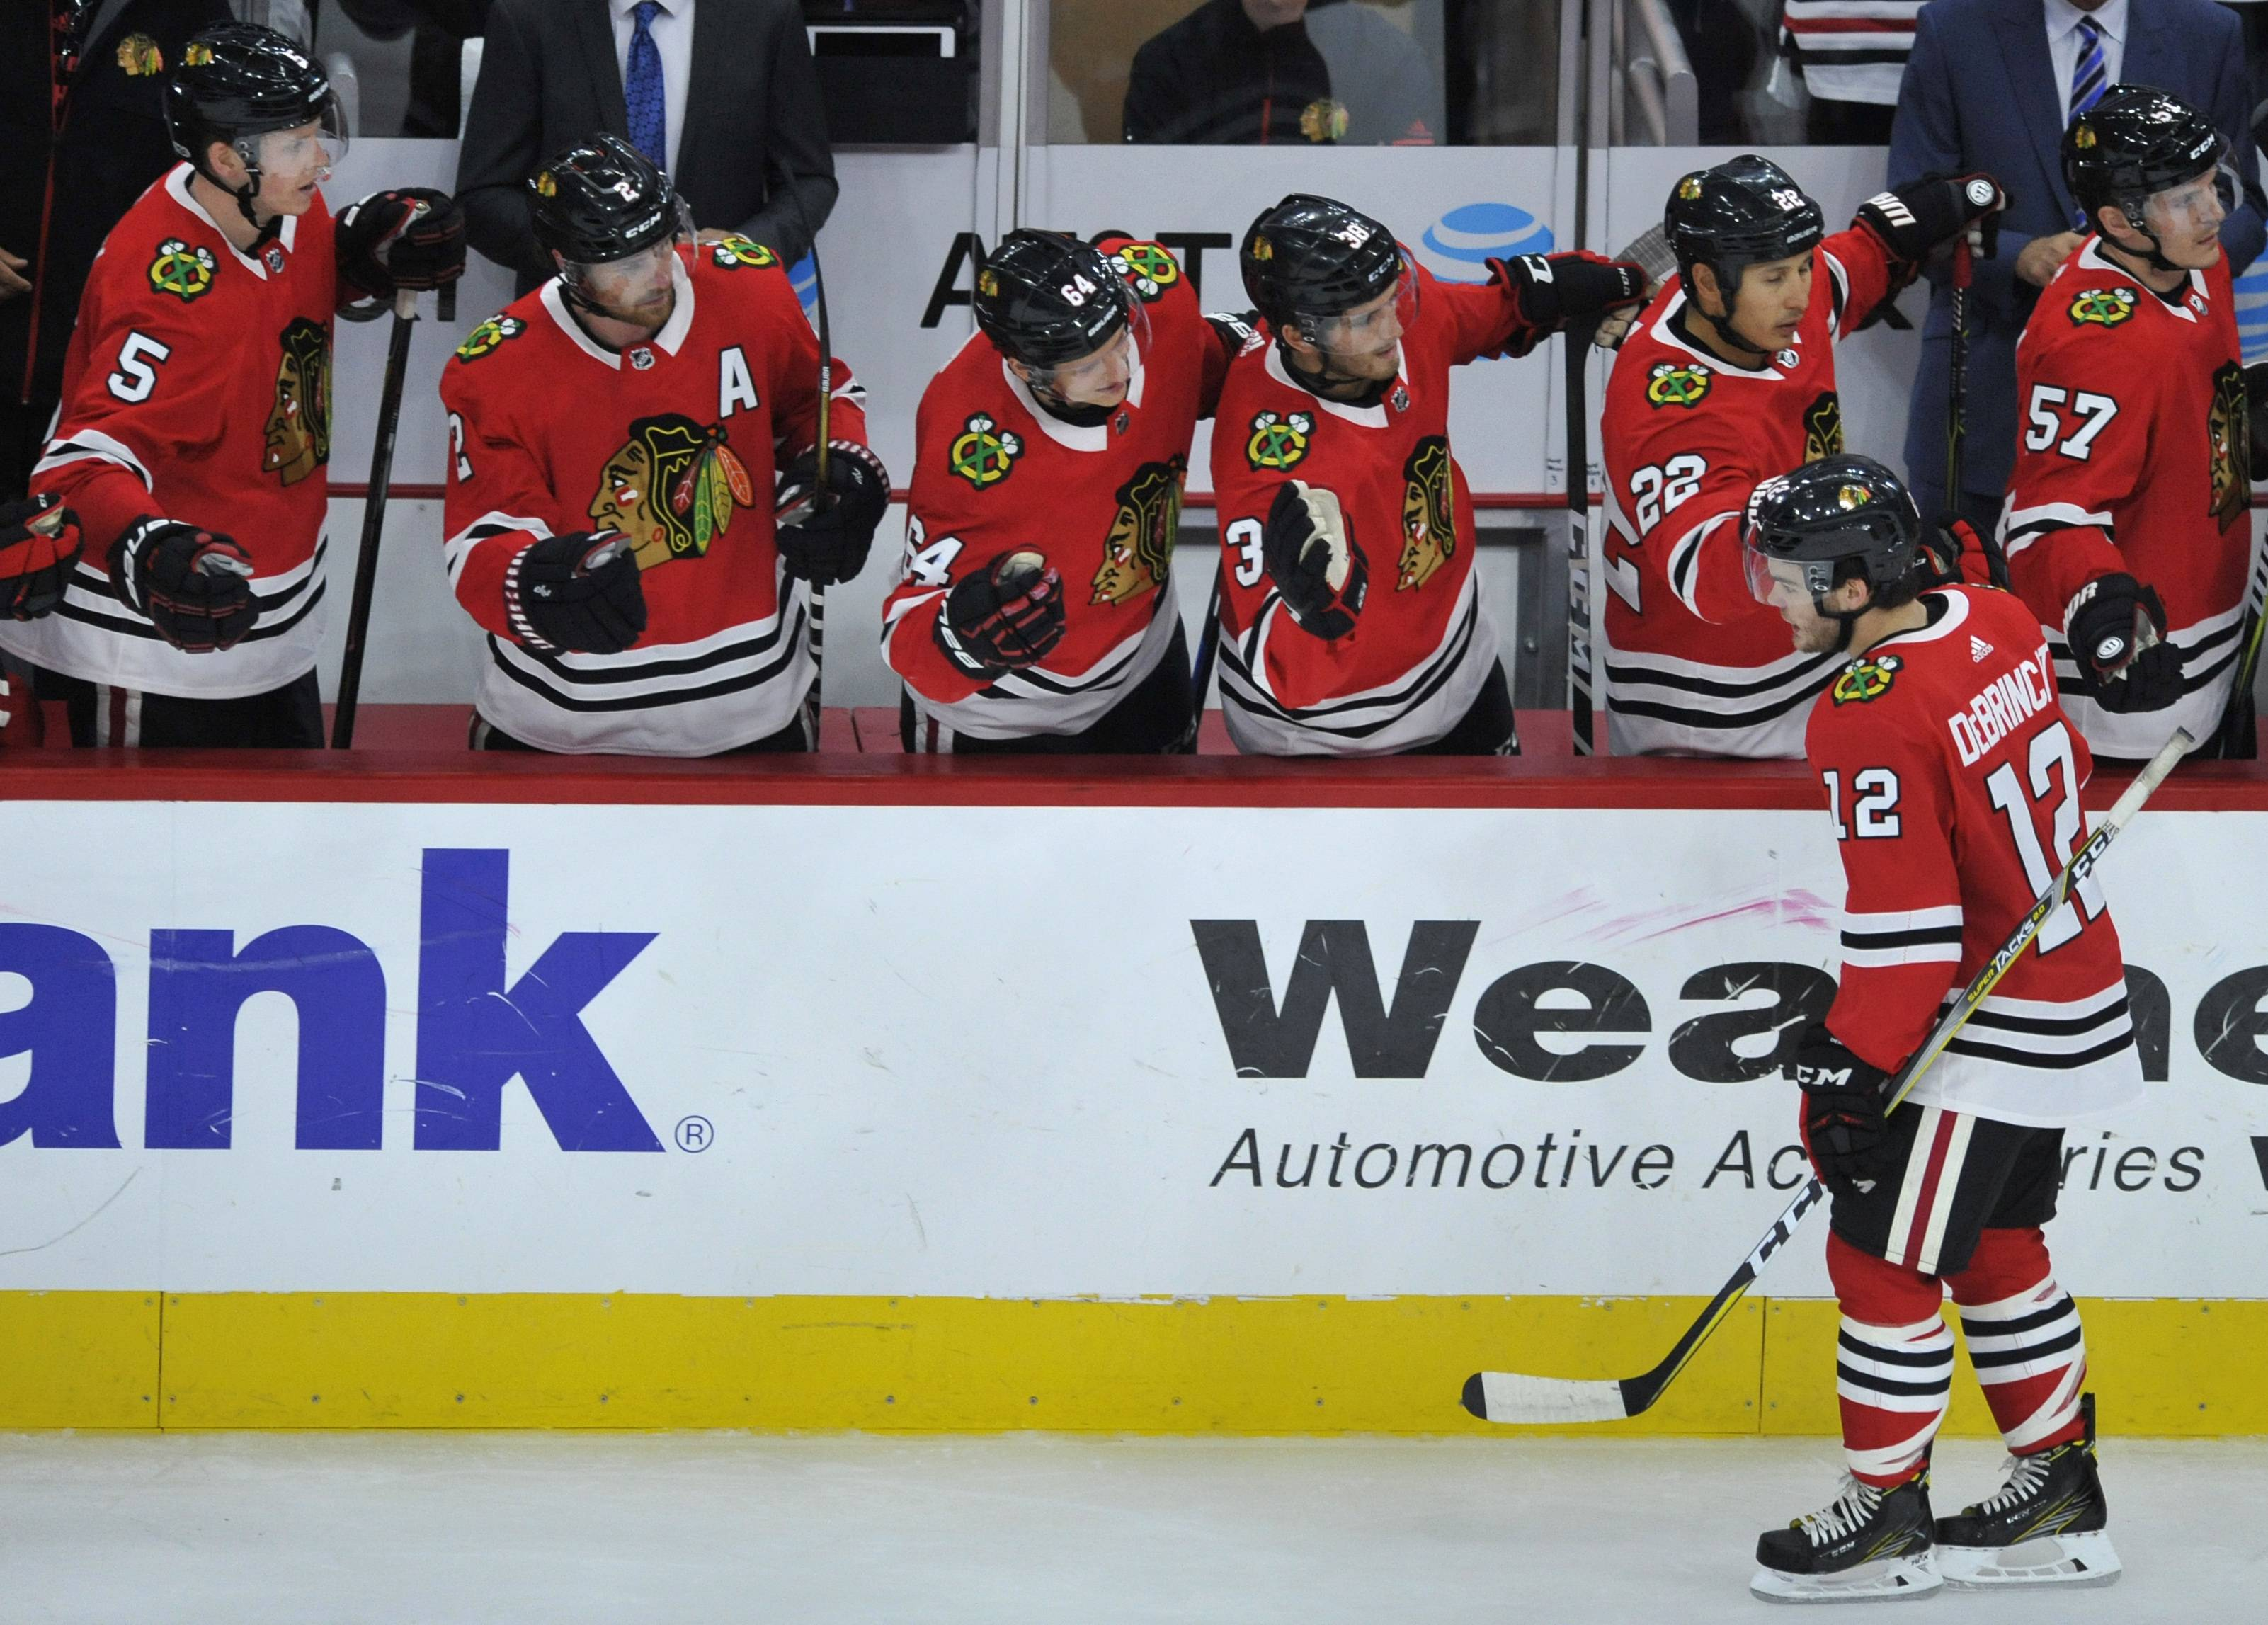 Chicago Blackhawks' Alex Debrincat (12) celebrates with teammates on the bench after scoring a goal during the second period of a preseason NHL hockey game against the Detroit Red Wings Thursday, Sept. 21, 2017, in Chicago. (AP Photo/Paul Beaty)